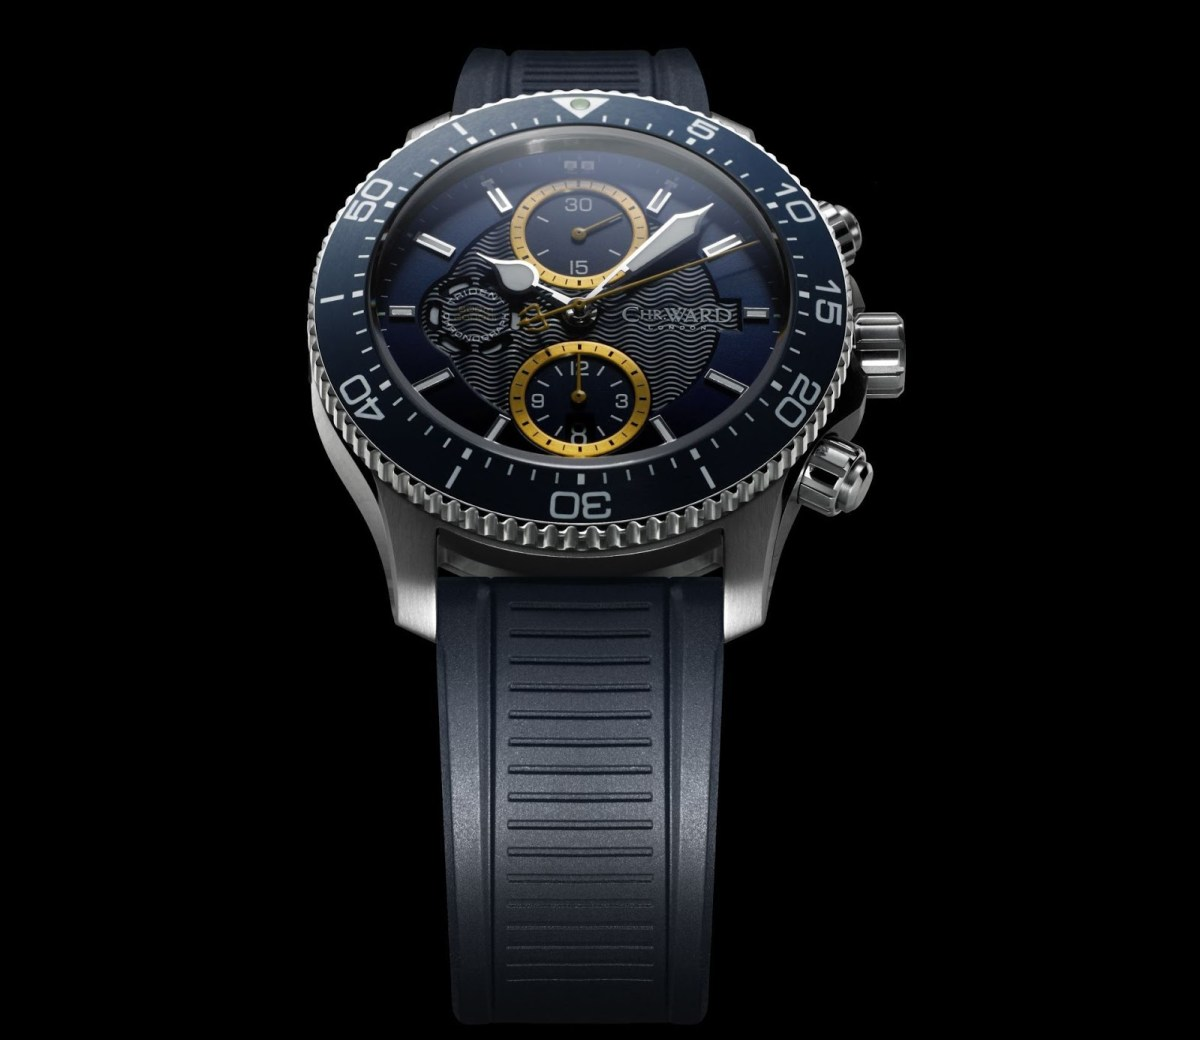 Christopher Ward C60 Trident Chronograph Pro 600 1